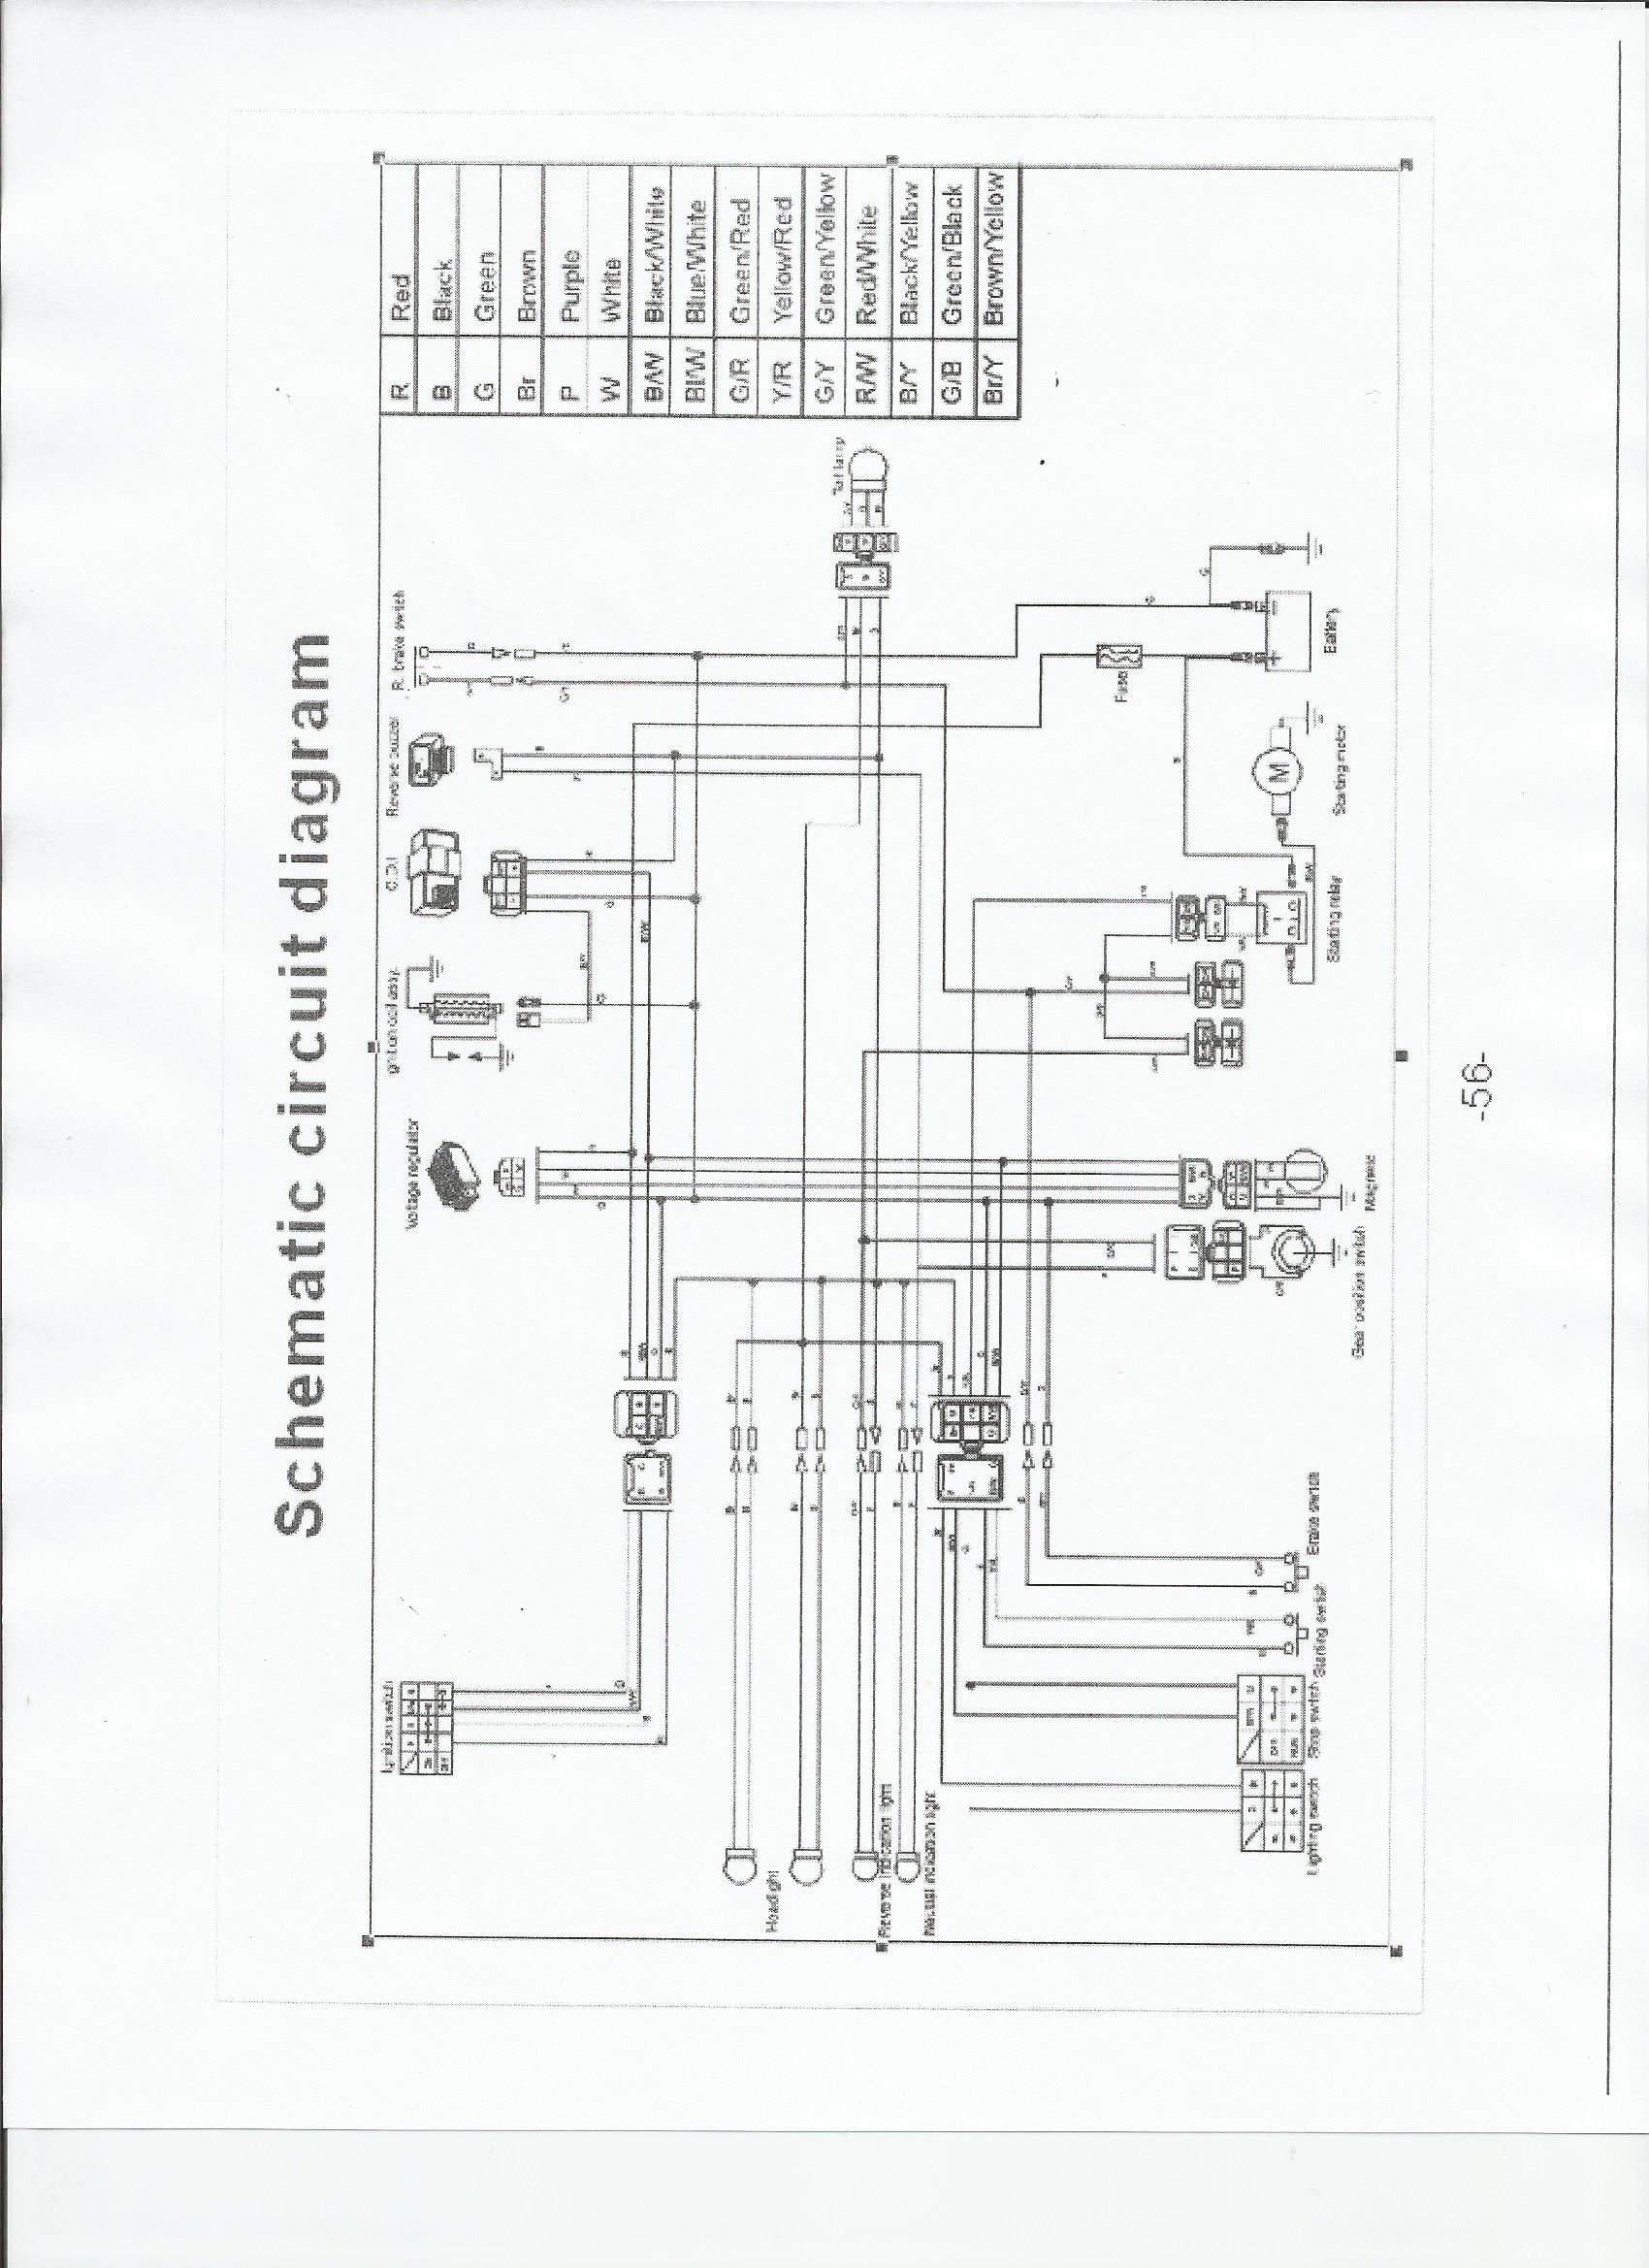 tao tao wiring diagram wiring diagrams schematics on Eton ATV Wiring Diagram for taotao mini and youth atv wiring schematic familygokarts support for tao tao wiring schematic jpg on at Eton Viper 50 Parts Diagram